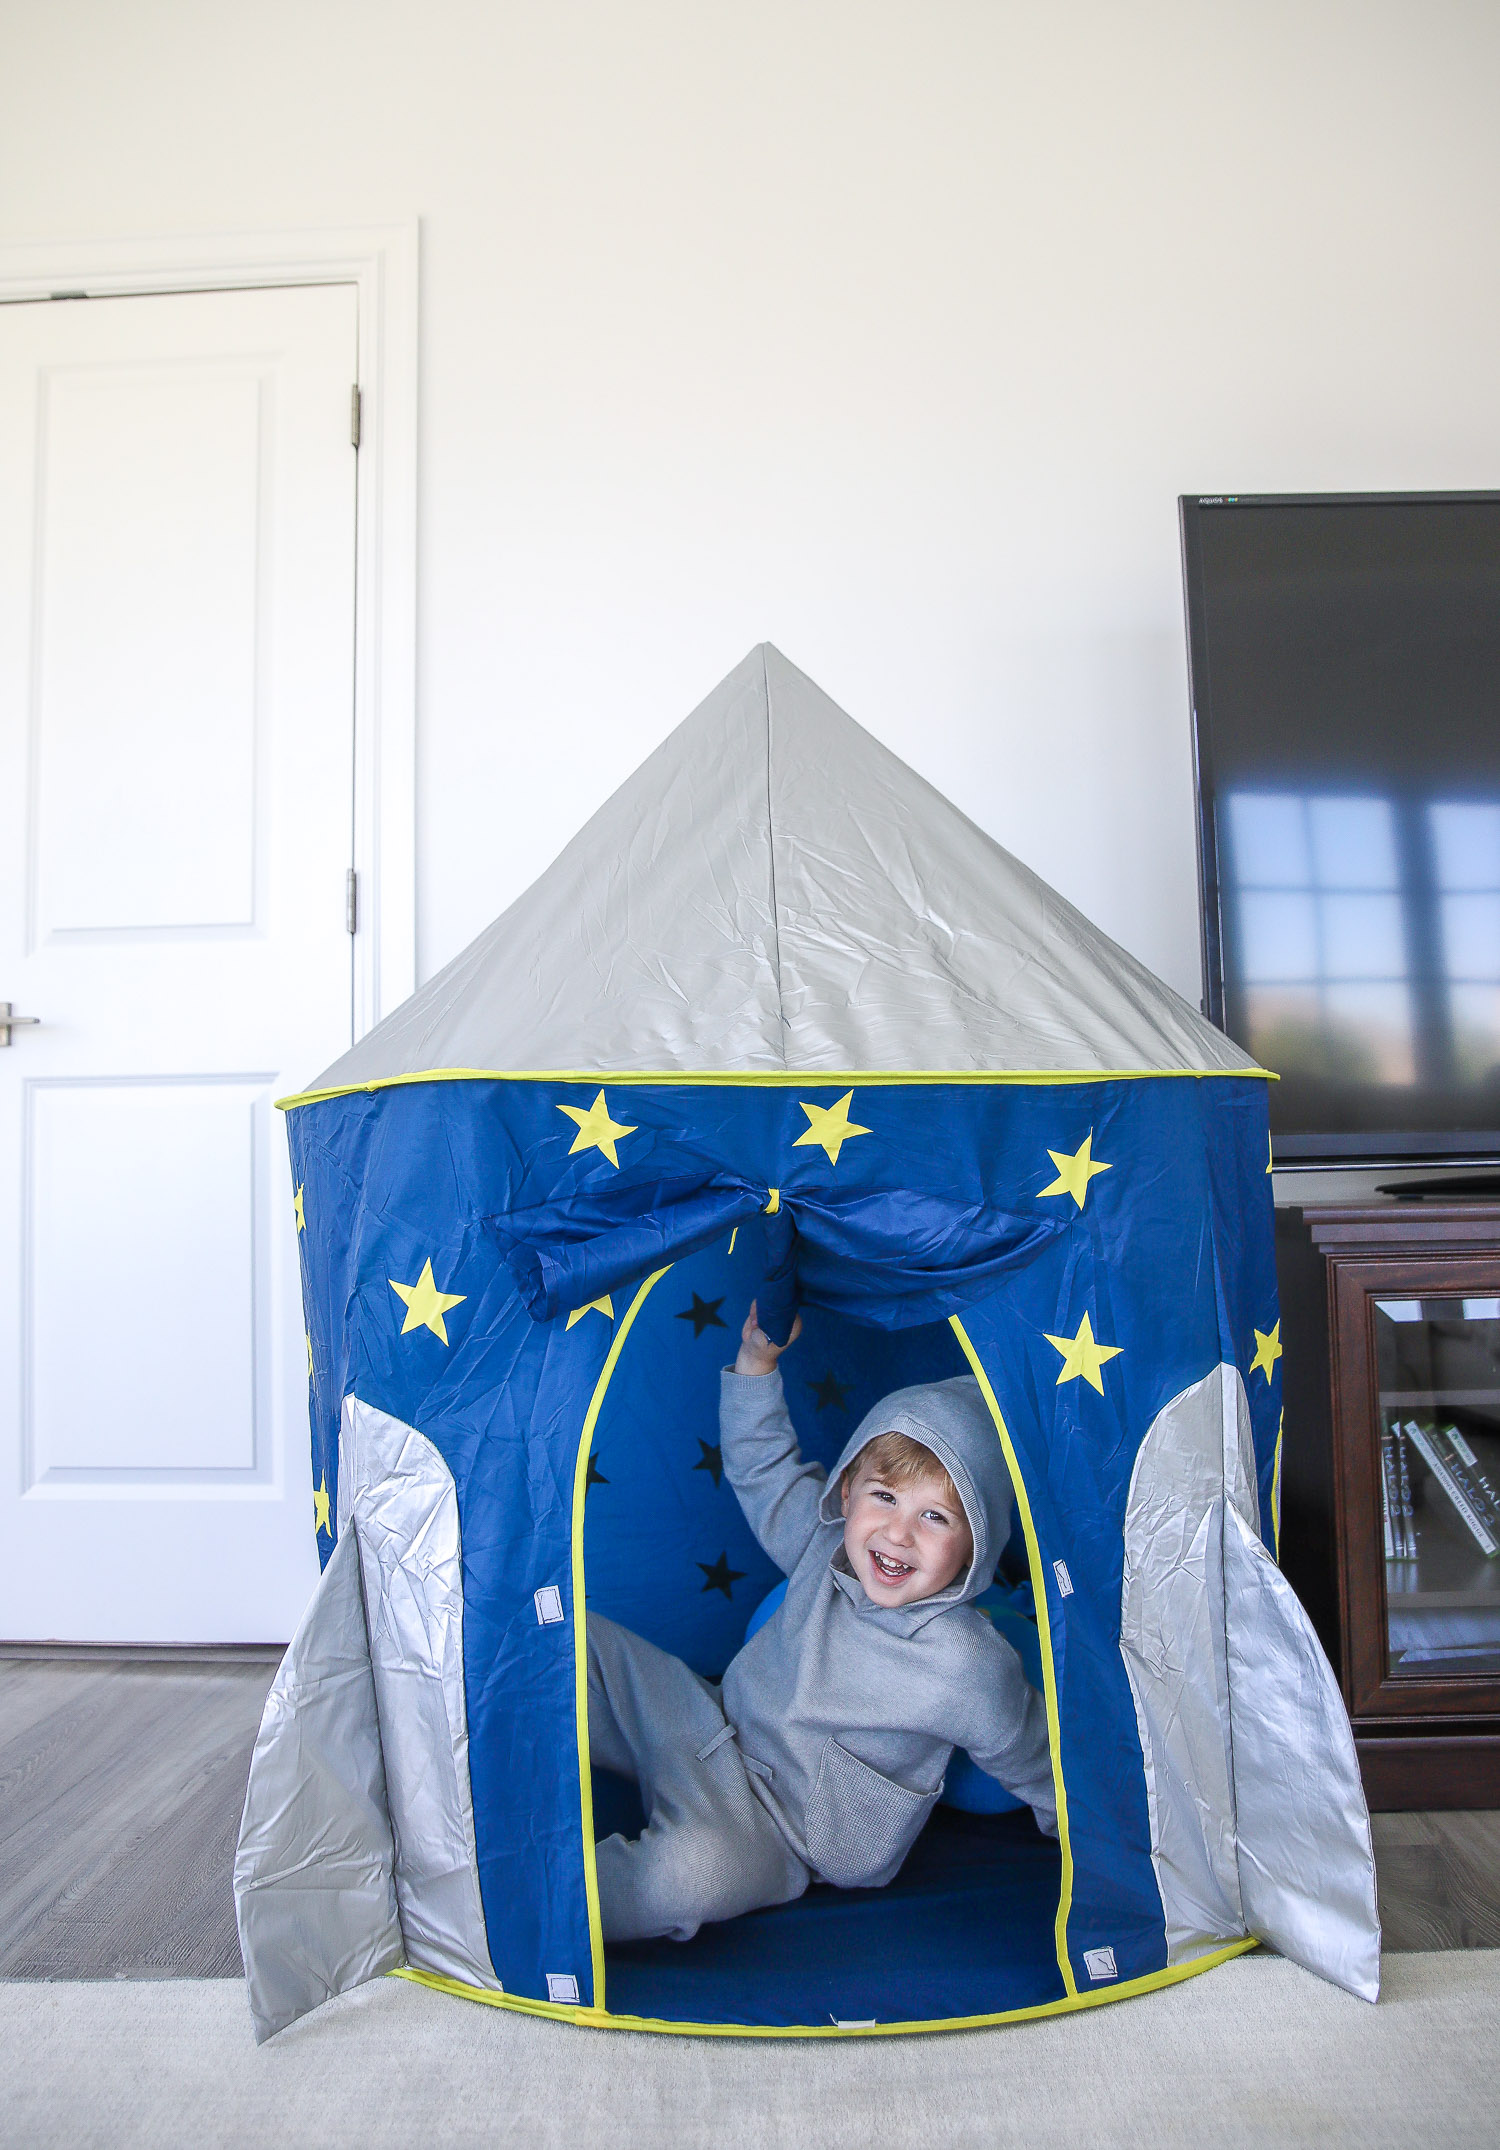 walmart kids home organization must haves, playroom organization ideas, emily gemma, the sweetest thing blog | Playroom Organization by popular US life and style blog, The Sweetest Thing: image of a little boy sitting in a rocket ship pop up tent.